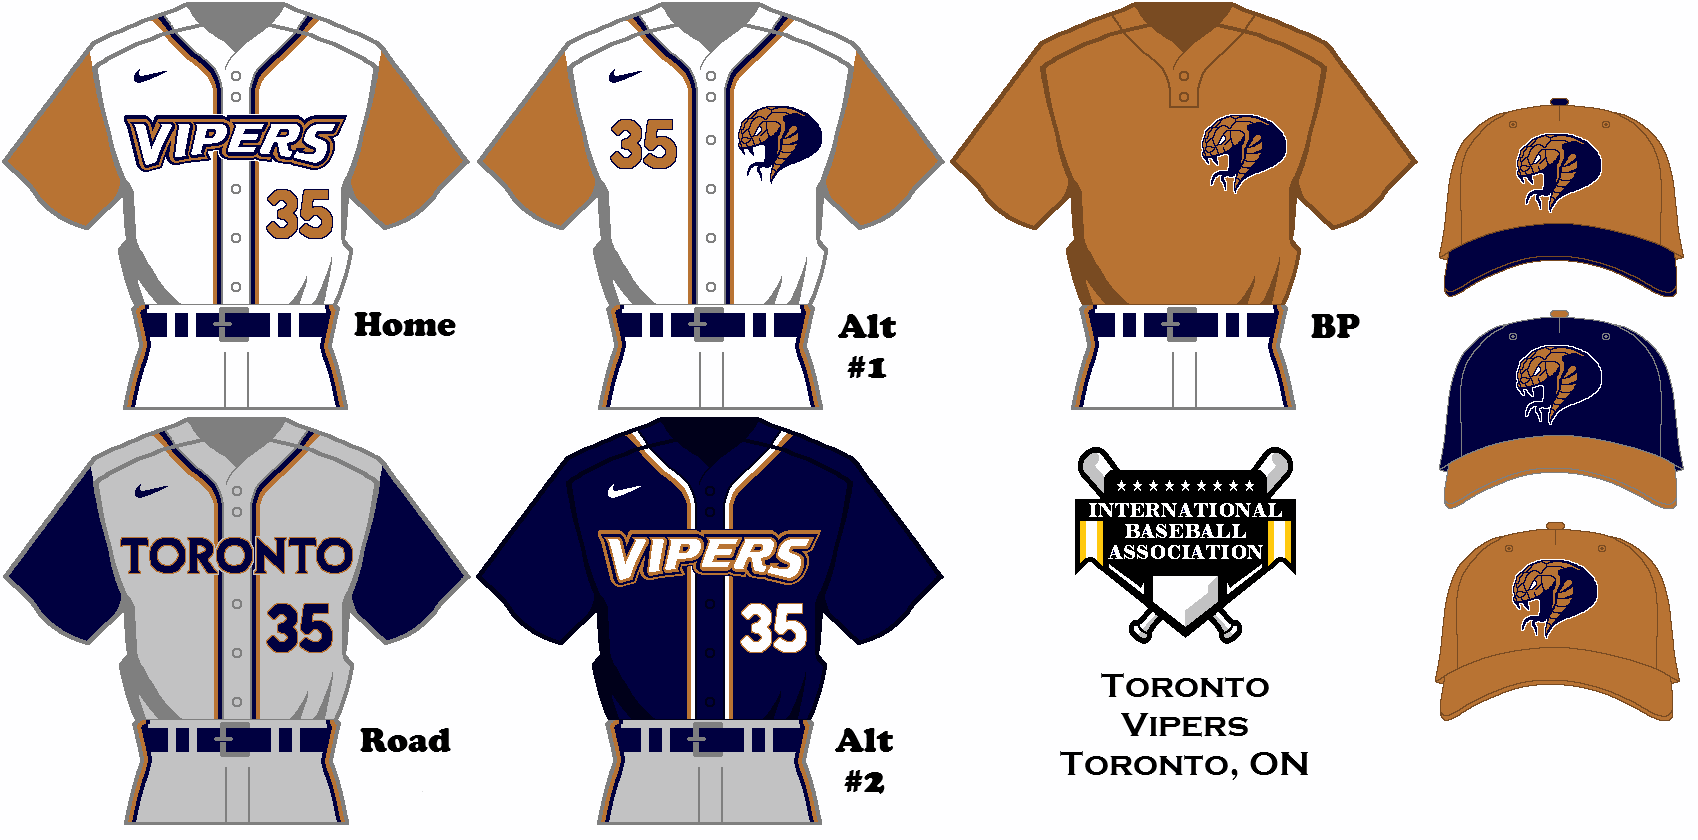 Uniform Set Concept For The Toronto Vipers Of The Fictional International Baseball Association Concept Uniform Baseball